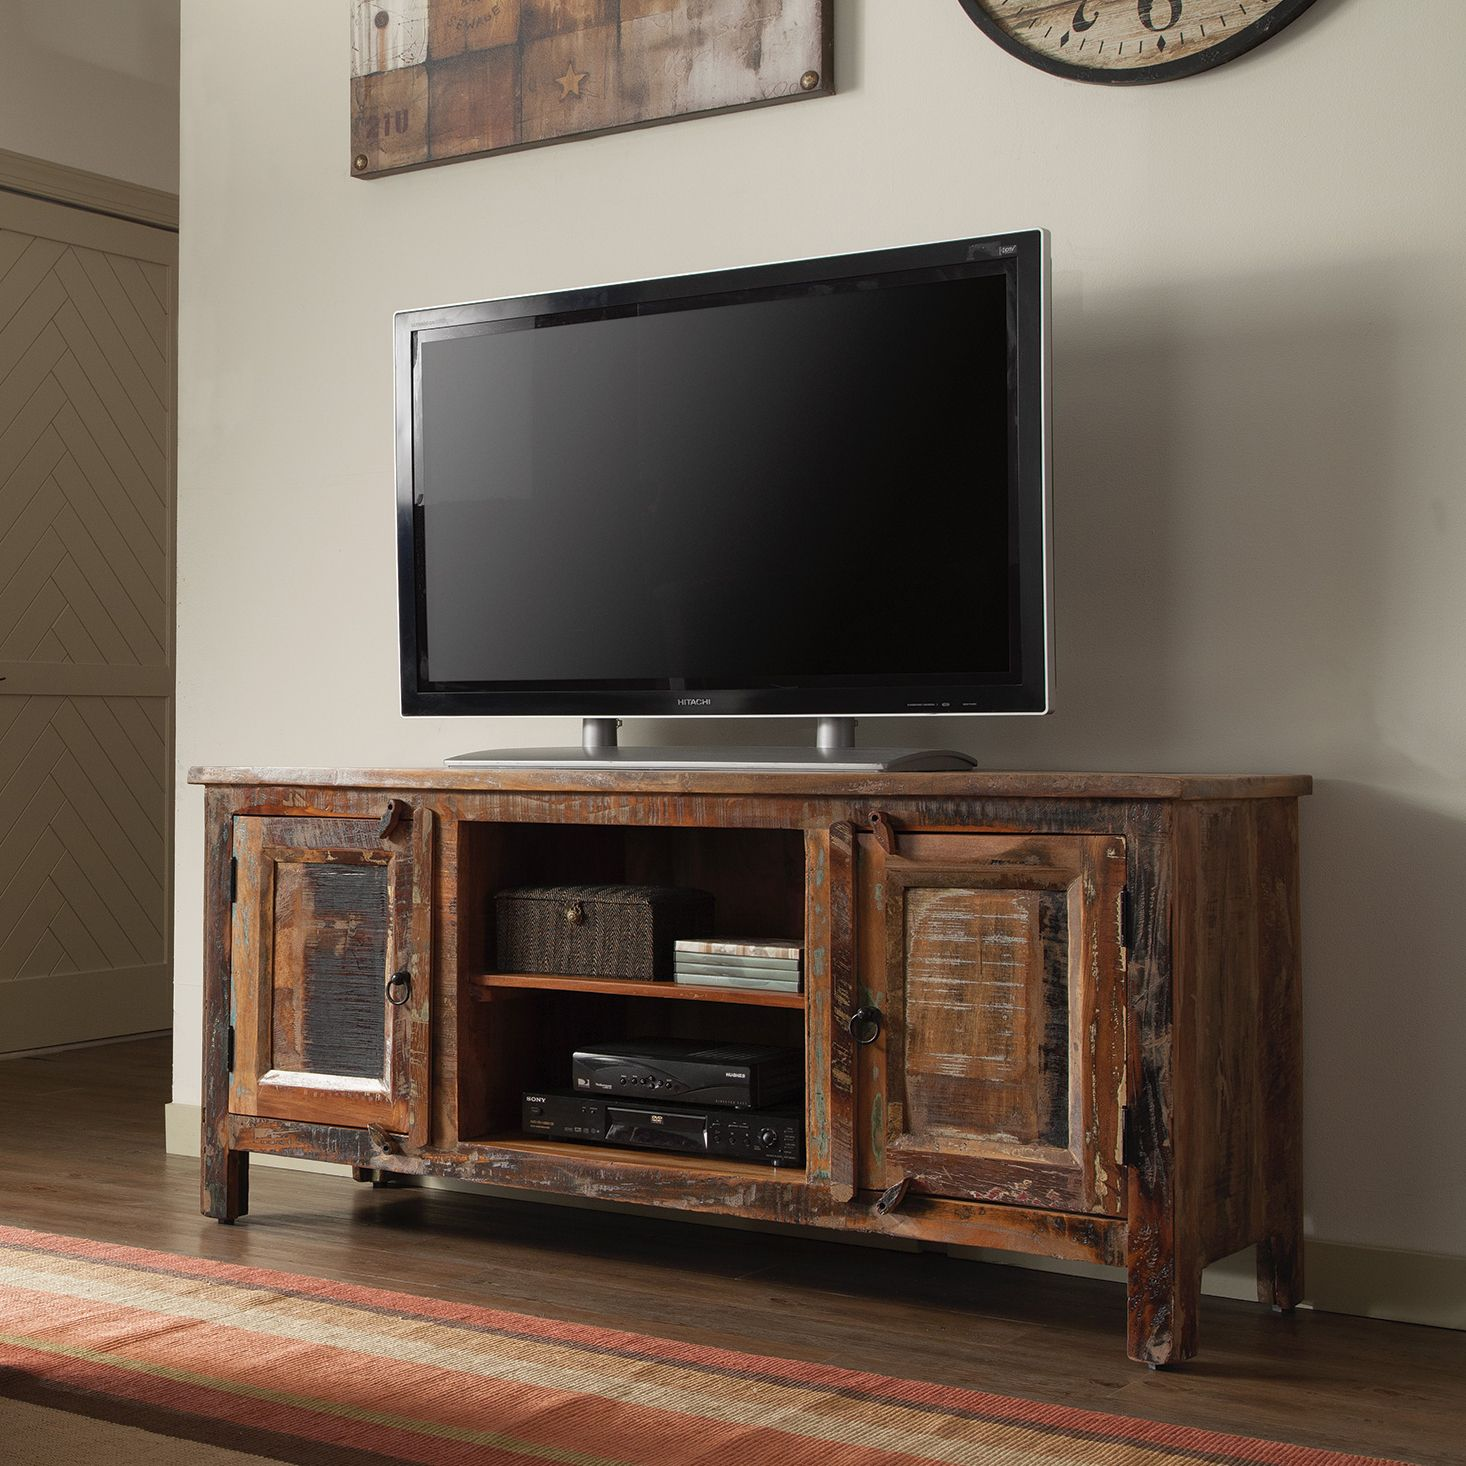 Each Piece Of This Tv Stand Is Handcrafted Resulting In One Of A Kind  Fnishes.